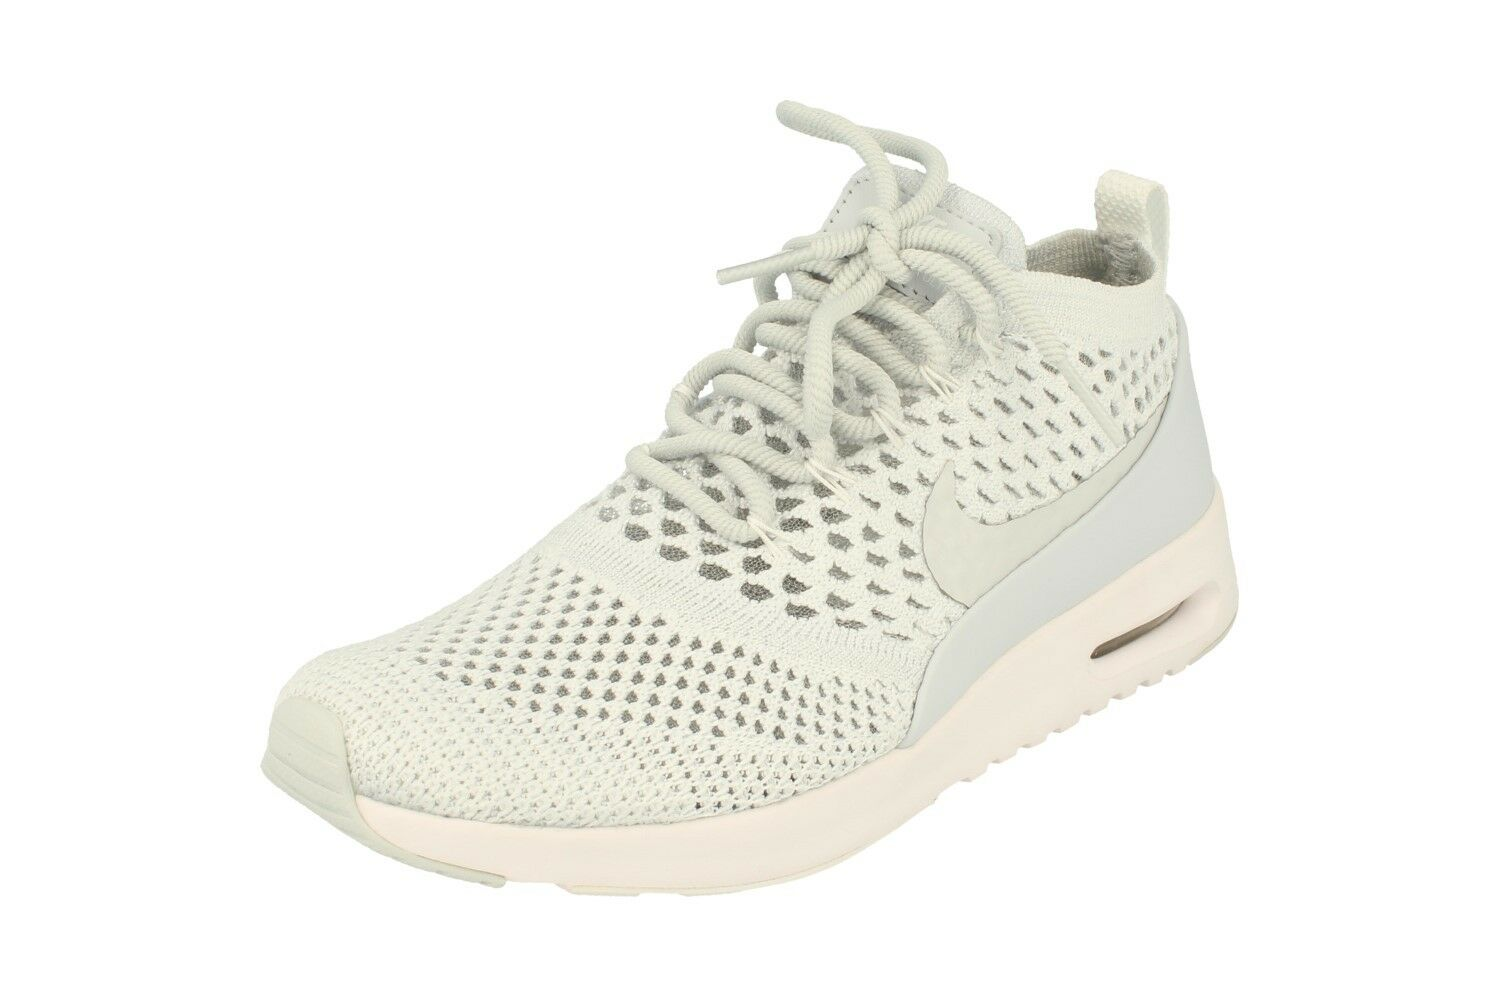 Nike Air Max Thea Ultra Fk Womens Running Trainers 881175 Sneakers Shoes 002 Brand discount